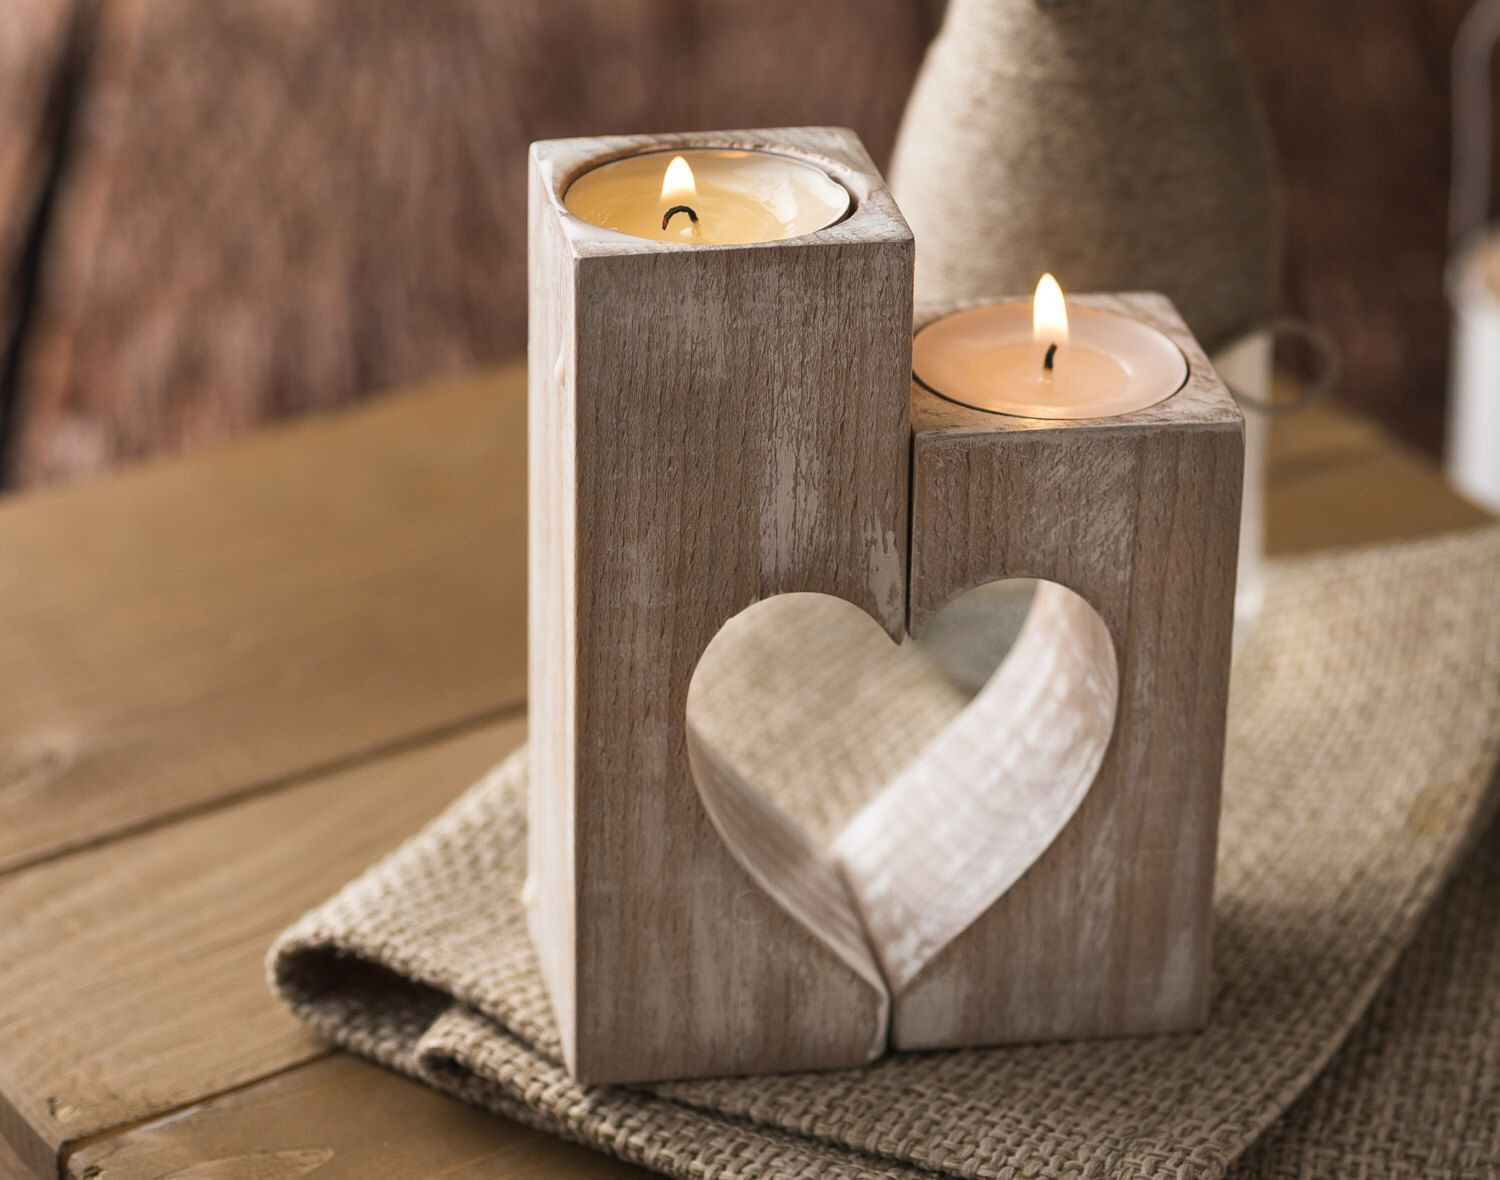 floating candle vases uk of 37 beautiful christmas tea light holders creative lighting ideas with wooden candle holders rustic heart candle holders decorative candle holder valentine s day t ideas birthday